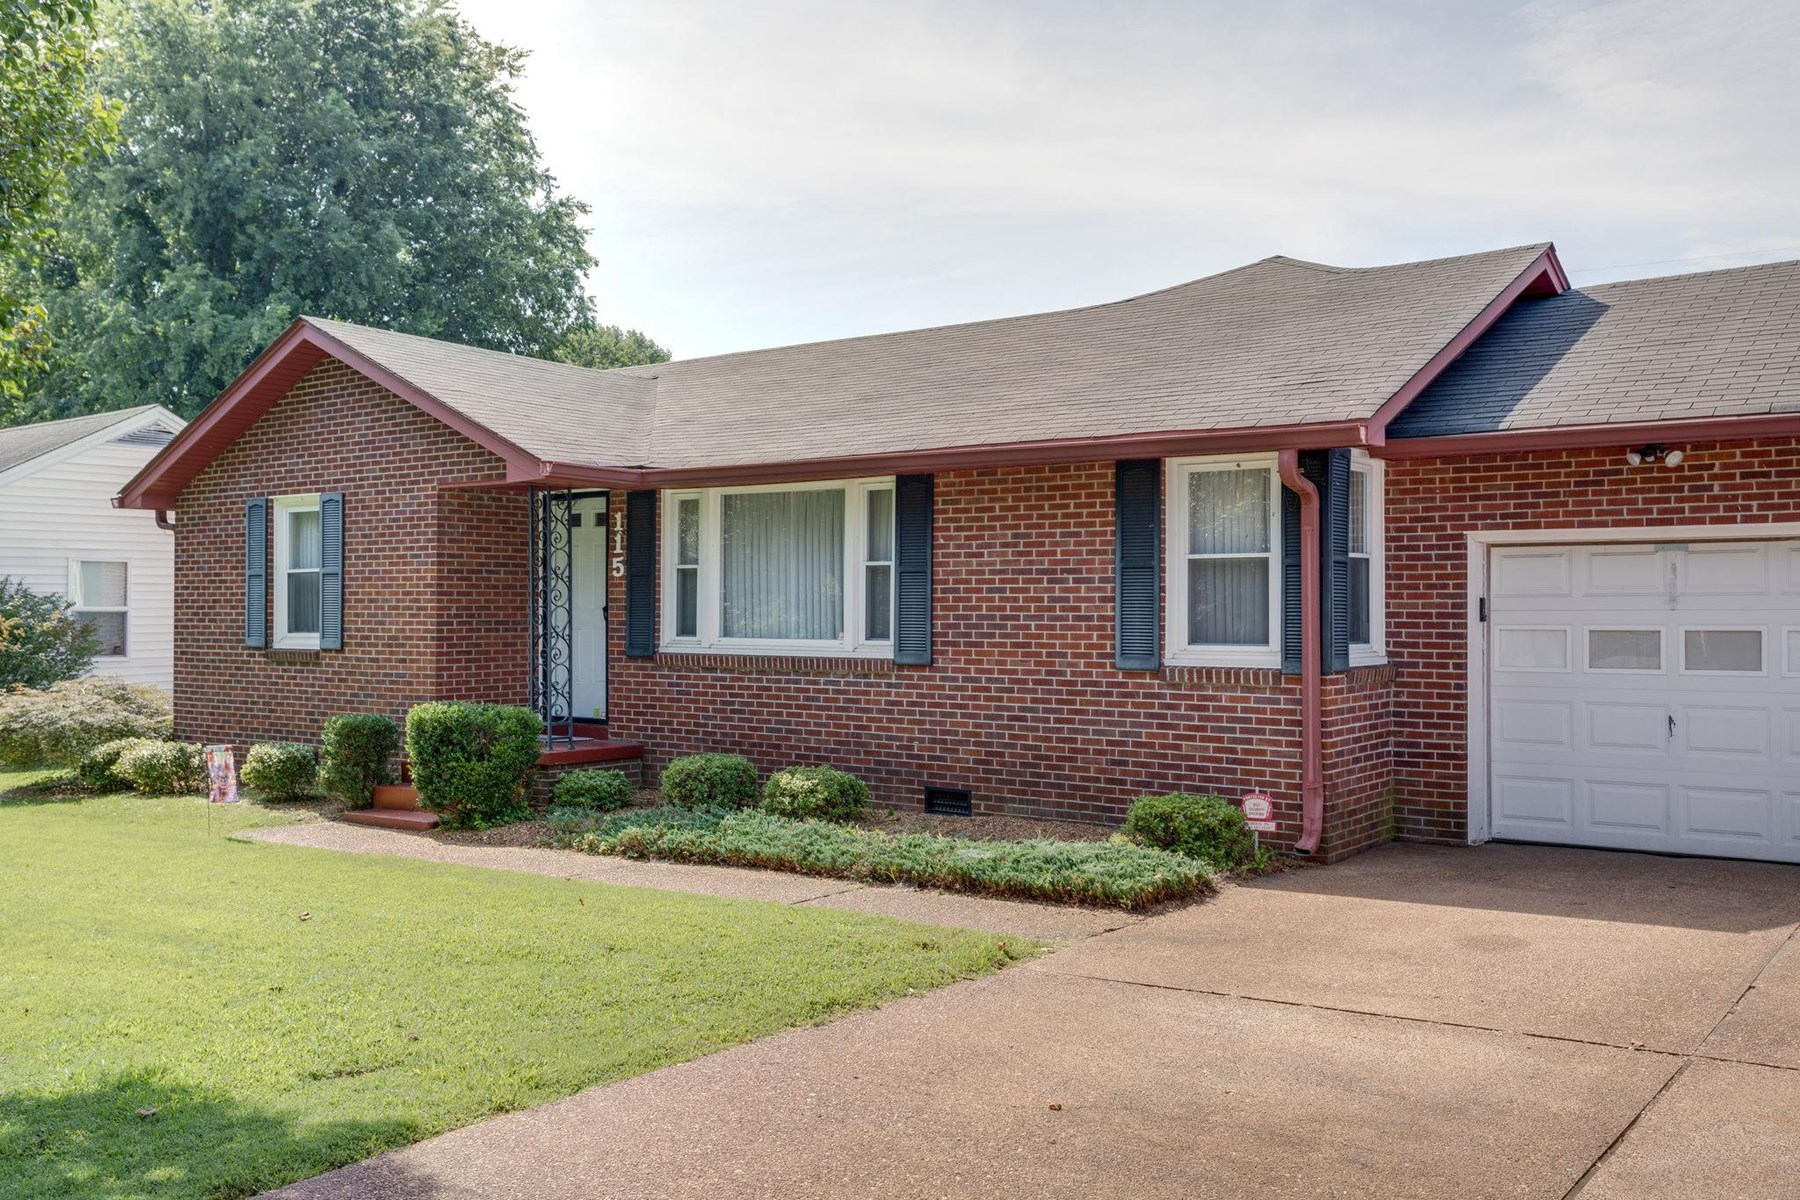 Brick Home in Town in Columbia, Tennessee with Privacy Fence